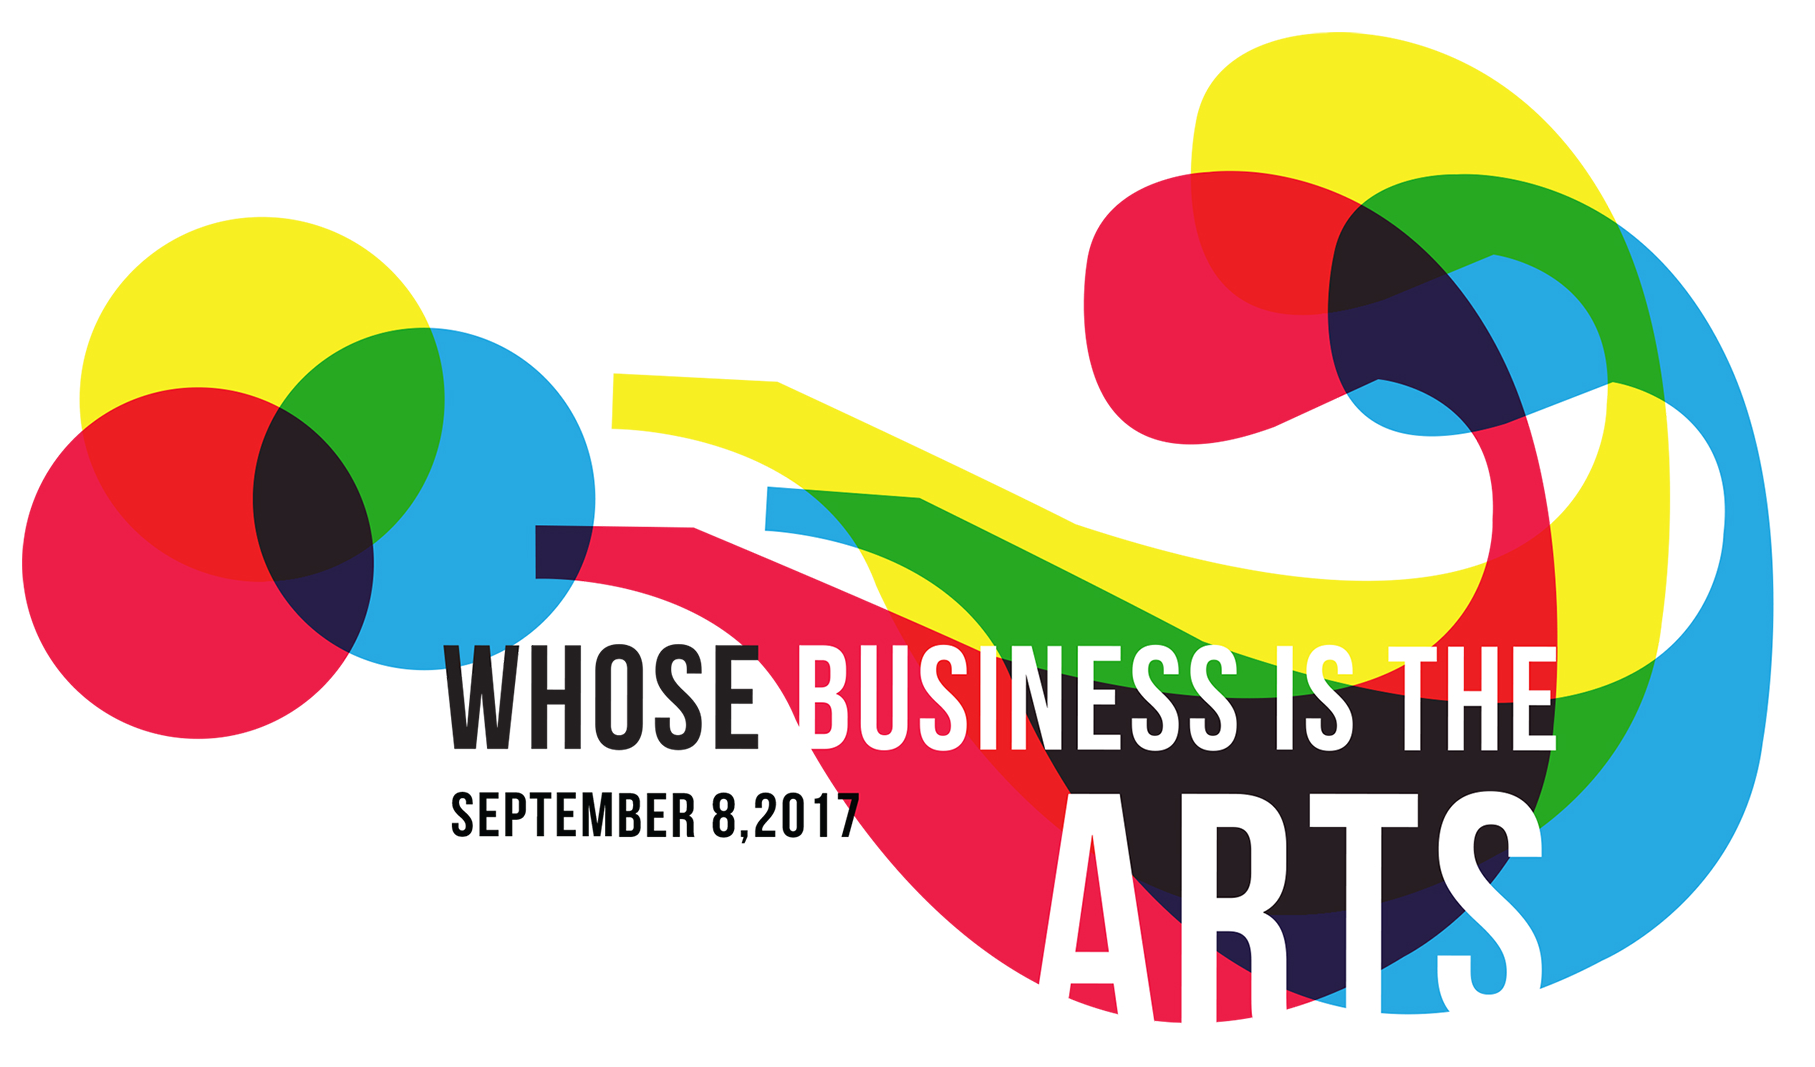 Trust clipart business organization. Whose is the arts